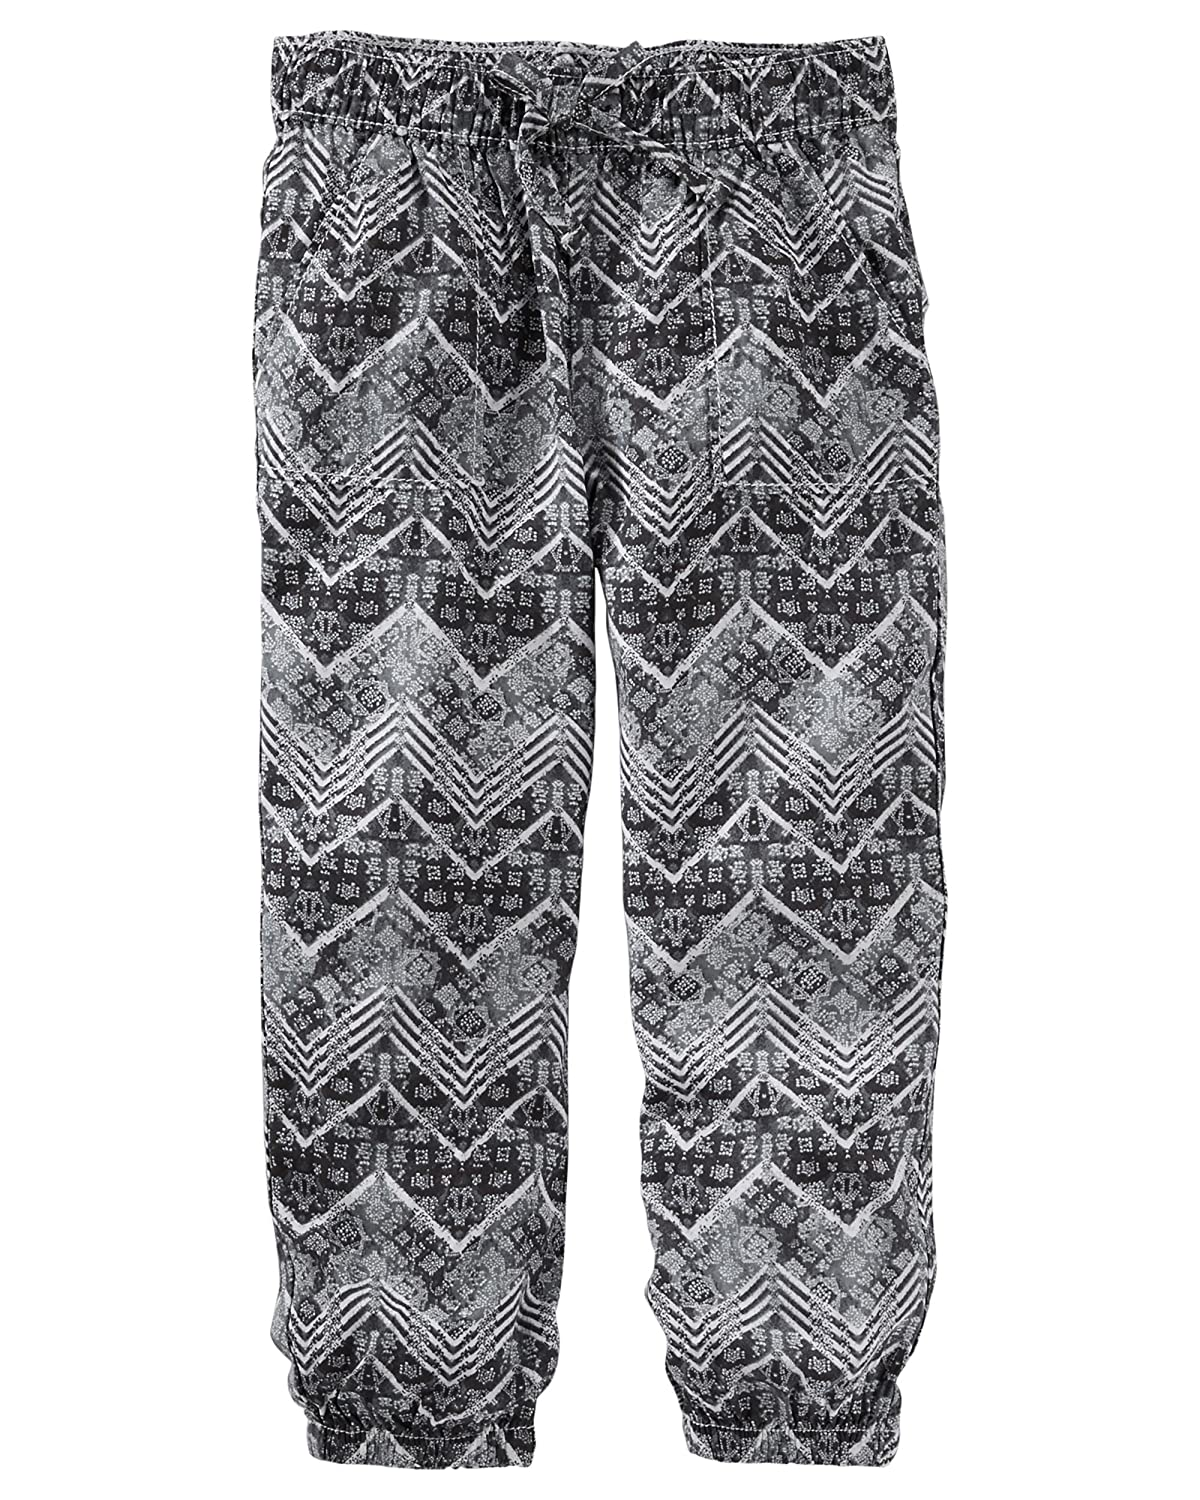 6X OshKosh Girls Chevron Print Joggers; Black and White